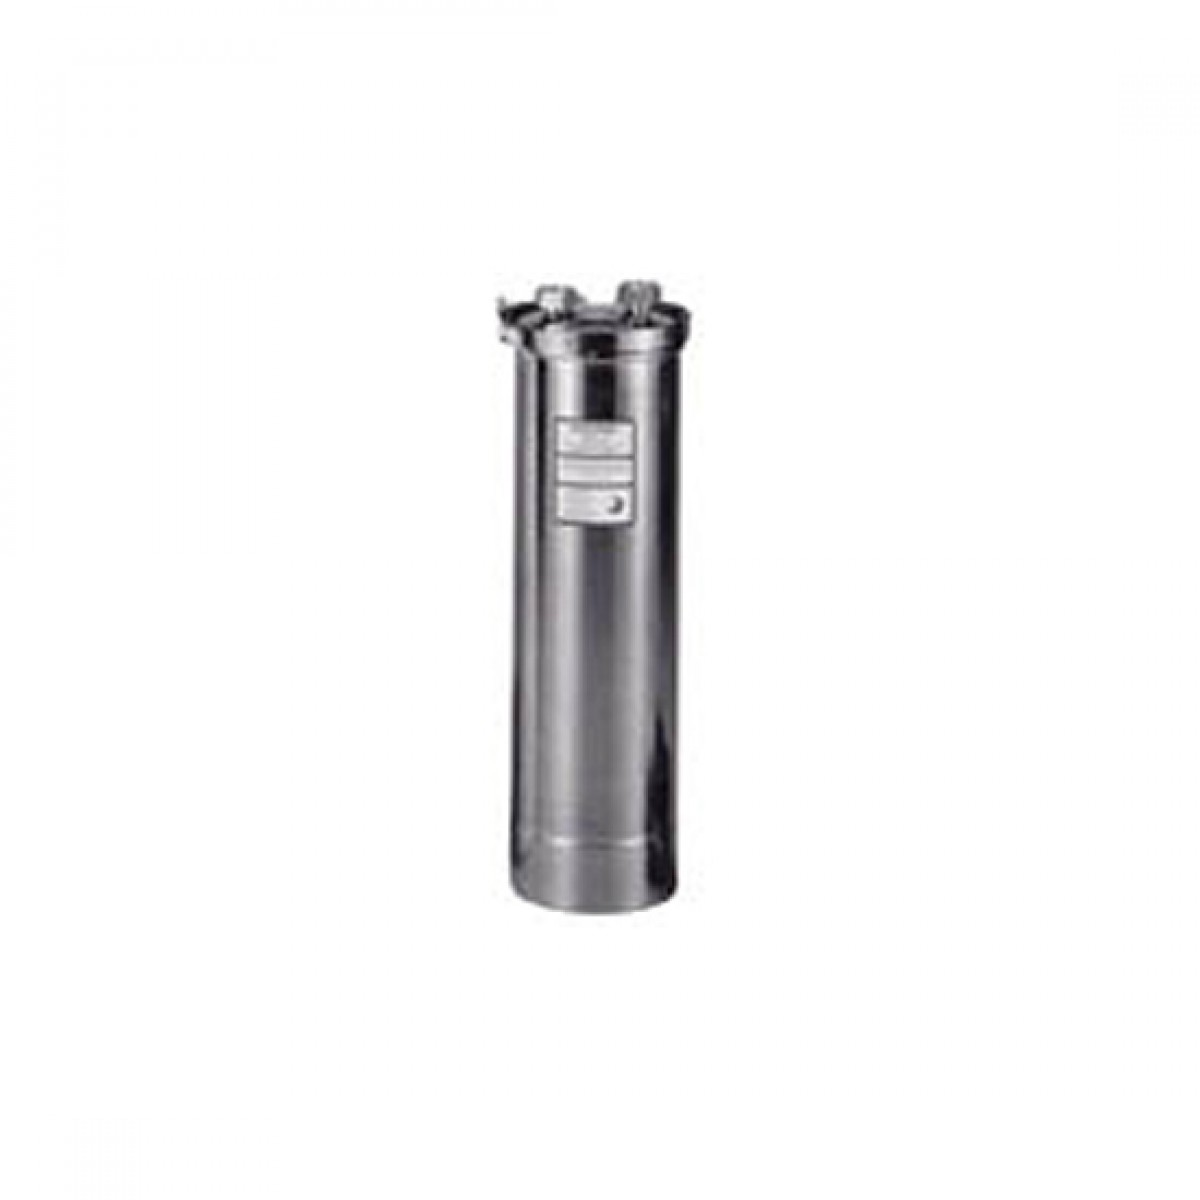 Household Water Filtration System Reviews Everpure T20 Whole House Filter Ev9370 00